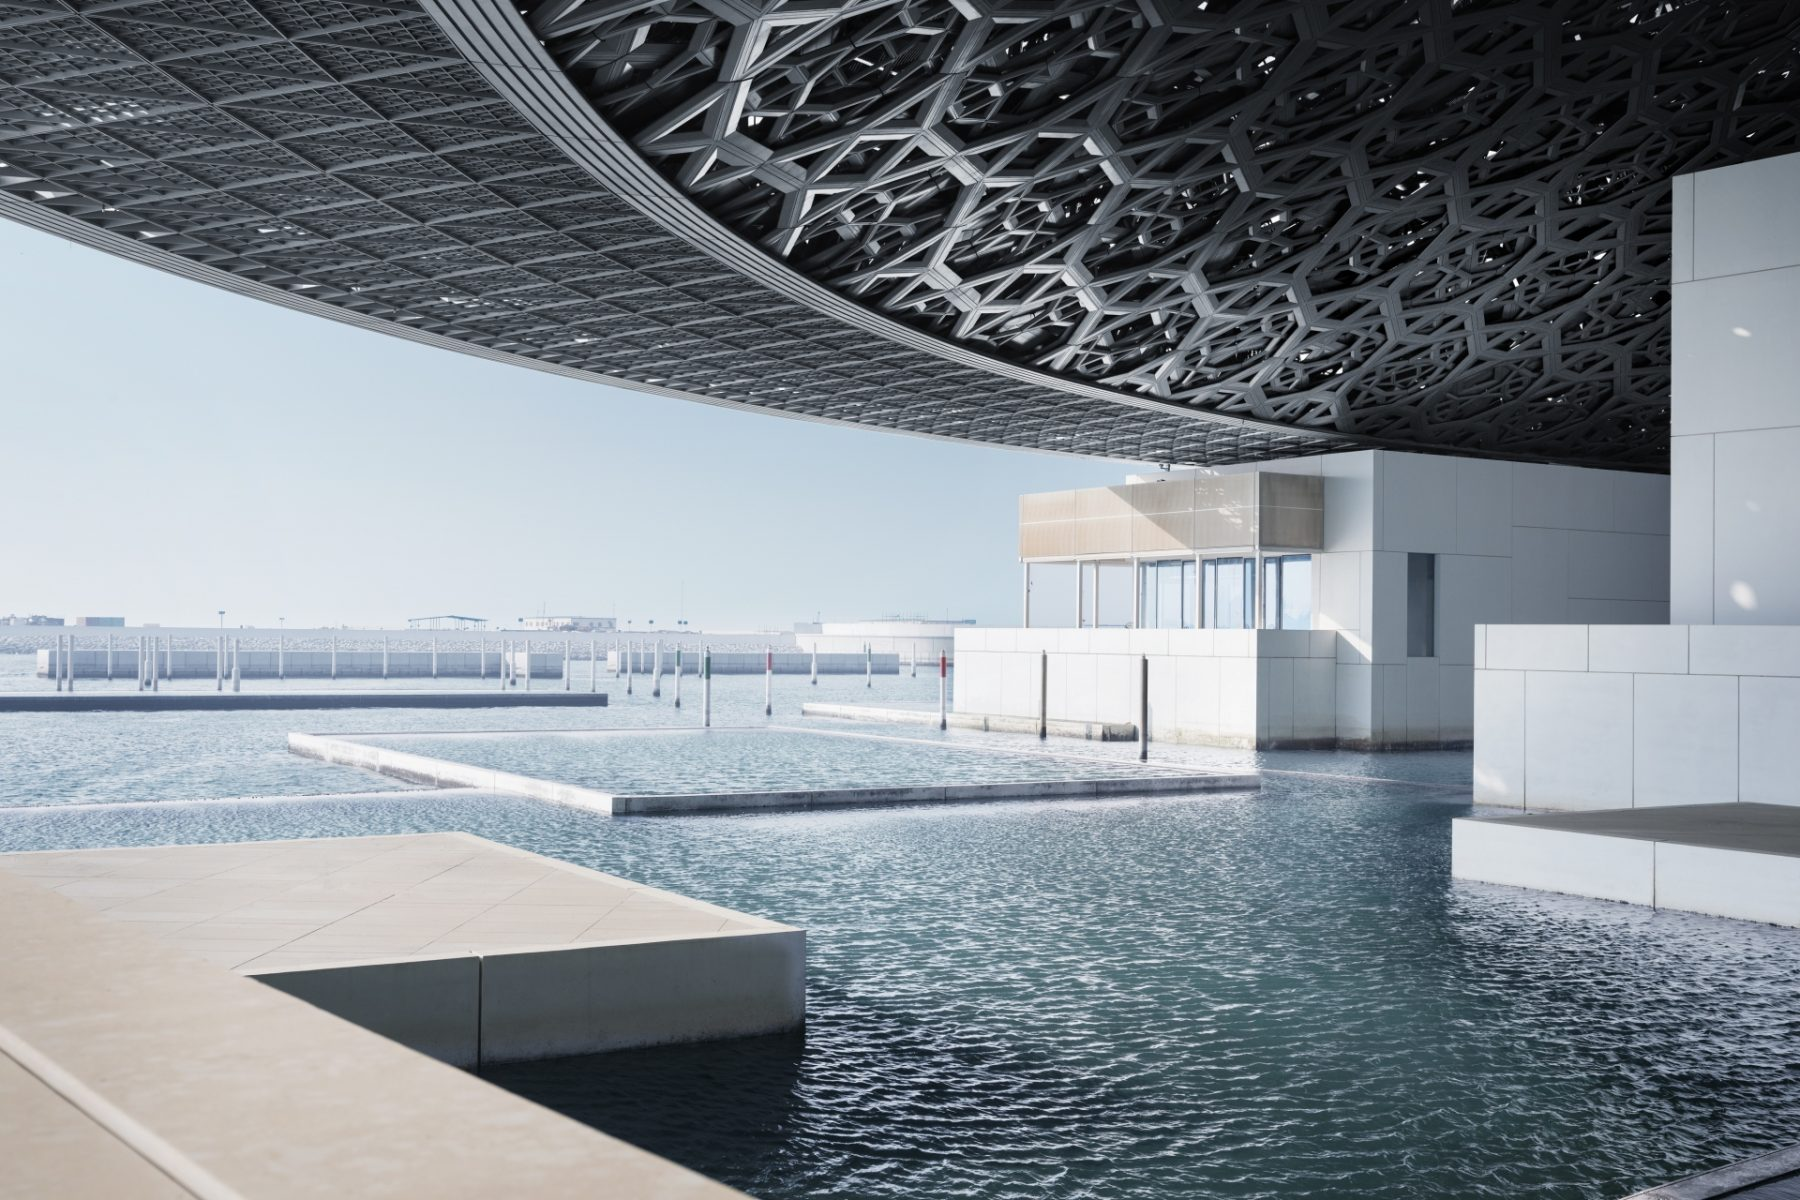 Louvre di Abu Dhabi, Photography Mohamed Somji (4)